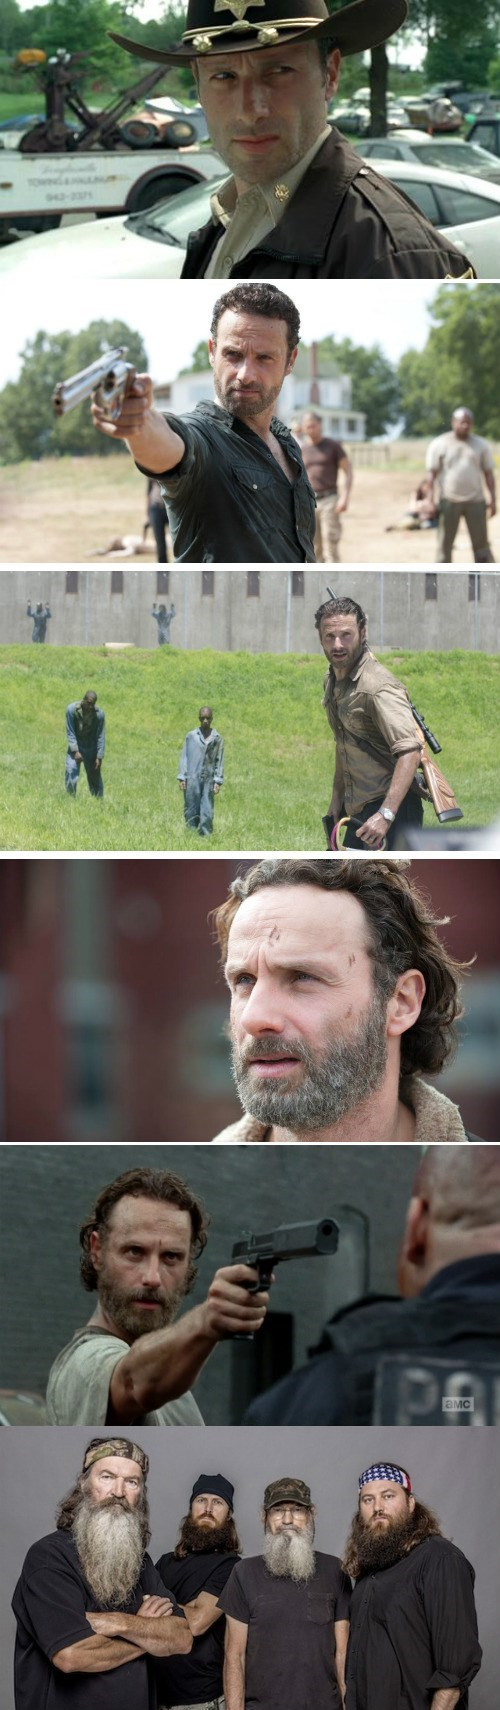 funny-walking-dead-zz-top-rick-grimes-beard-season-6